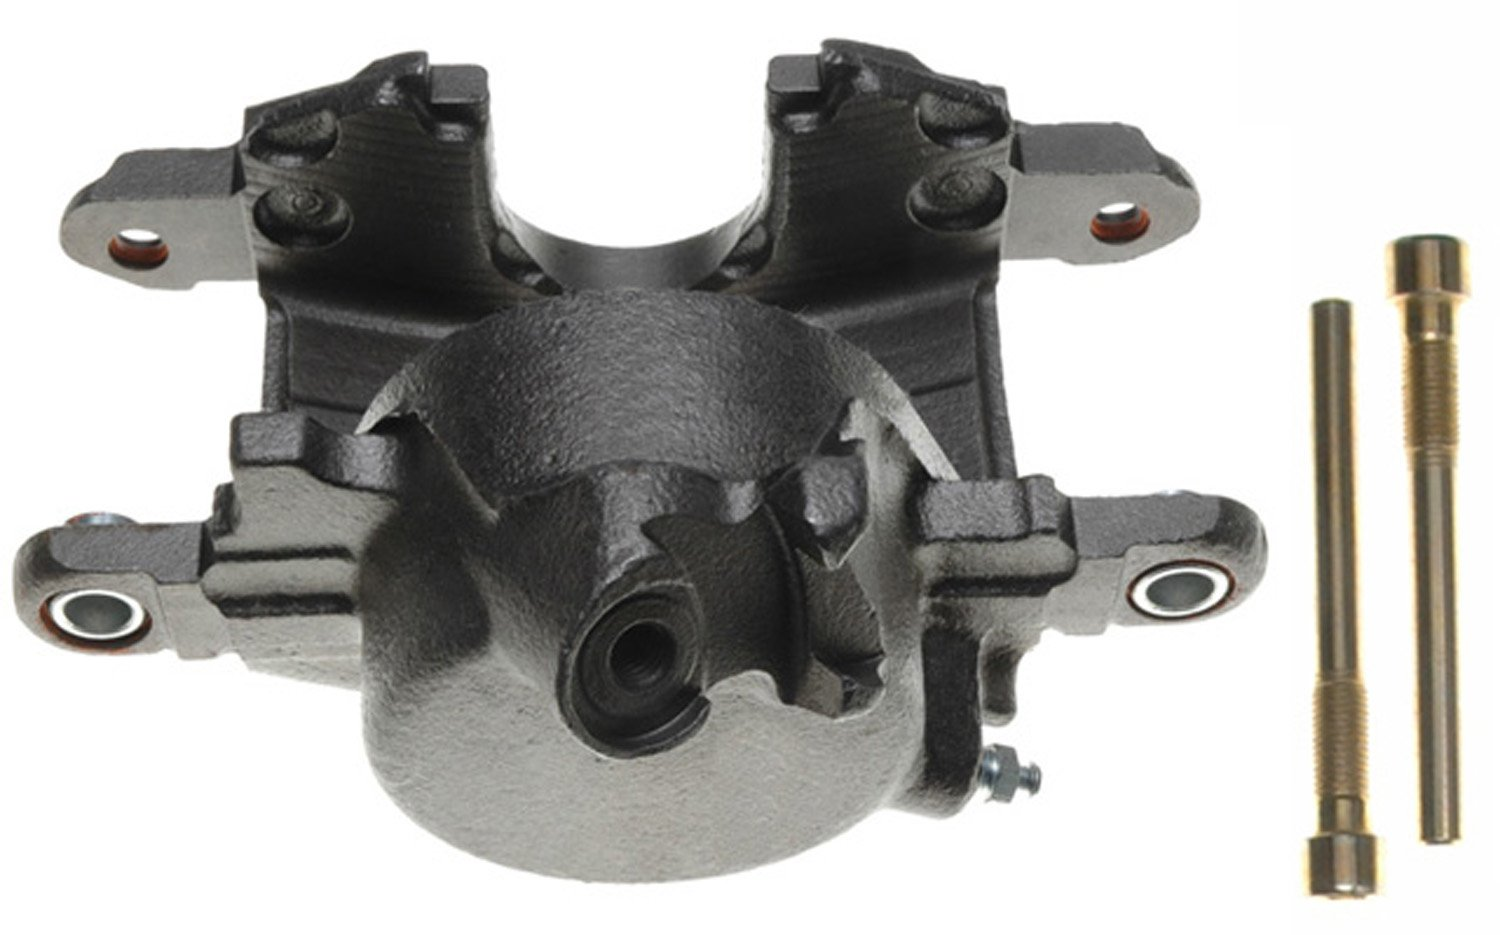 ACDelco 18FR623 Professional Front Passenger Side Disc Brake Caliper Assembly without Pads Friction Ready Non-Coated Remanufactured